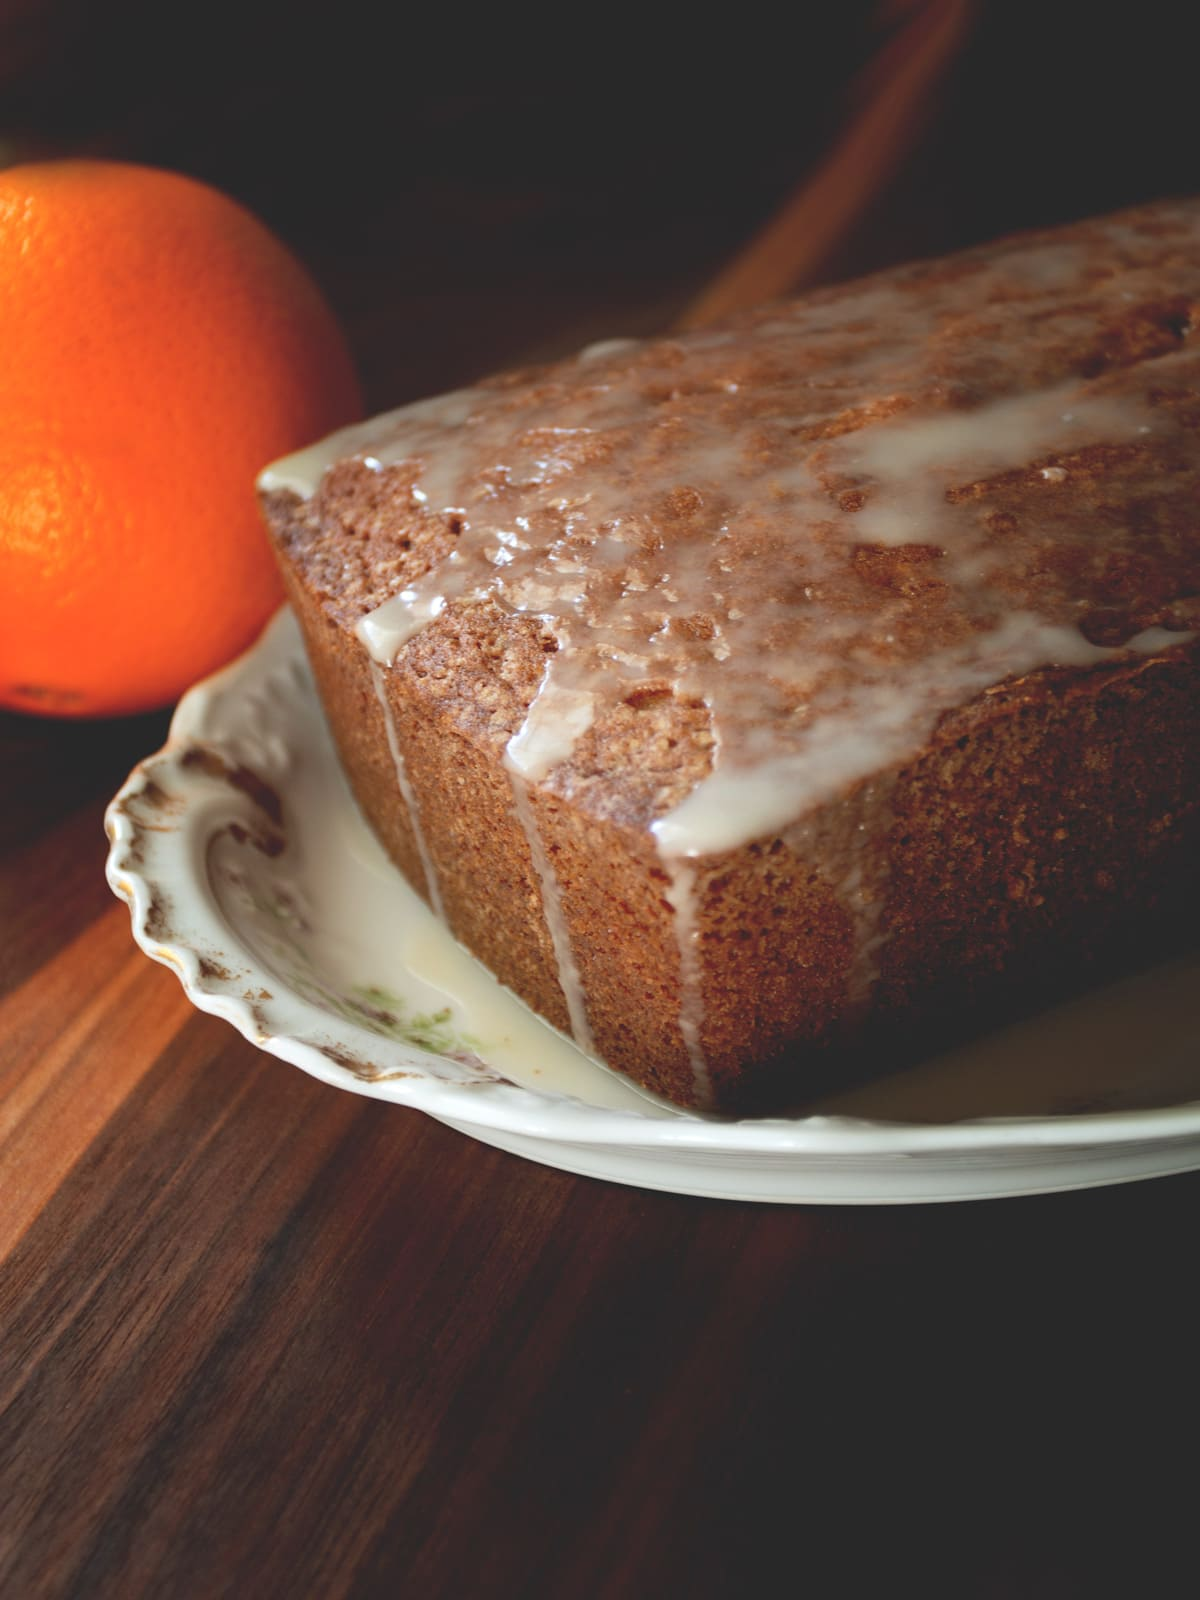 Rich in citrus flavor, you'll love this cheerful Orange Pound Cake.